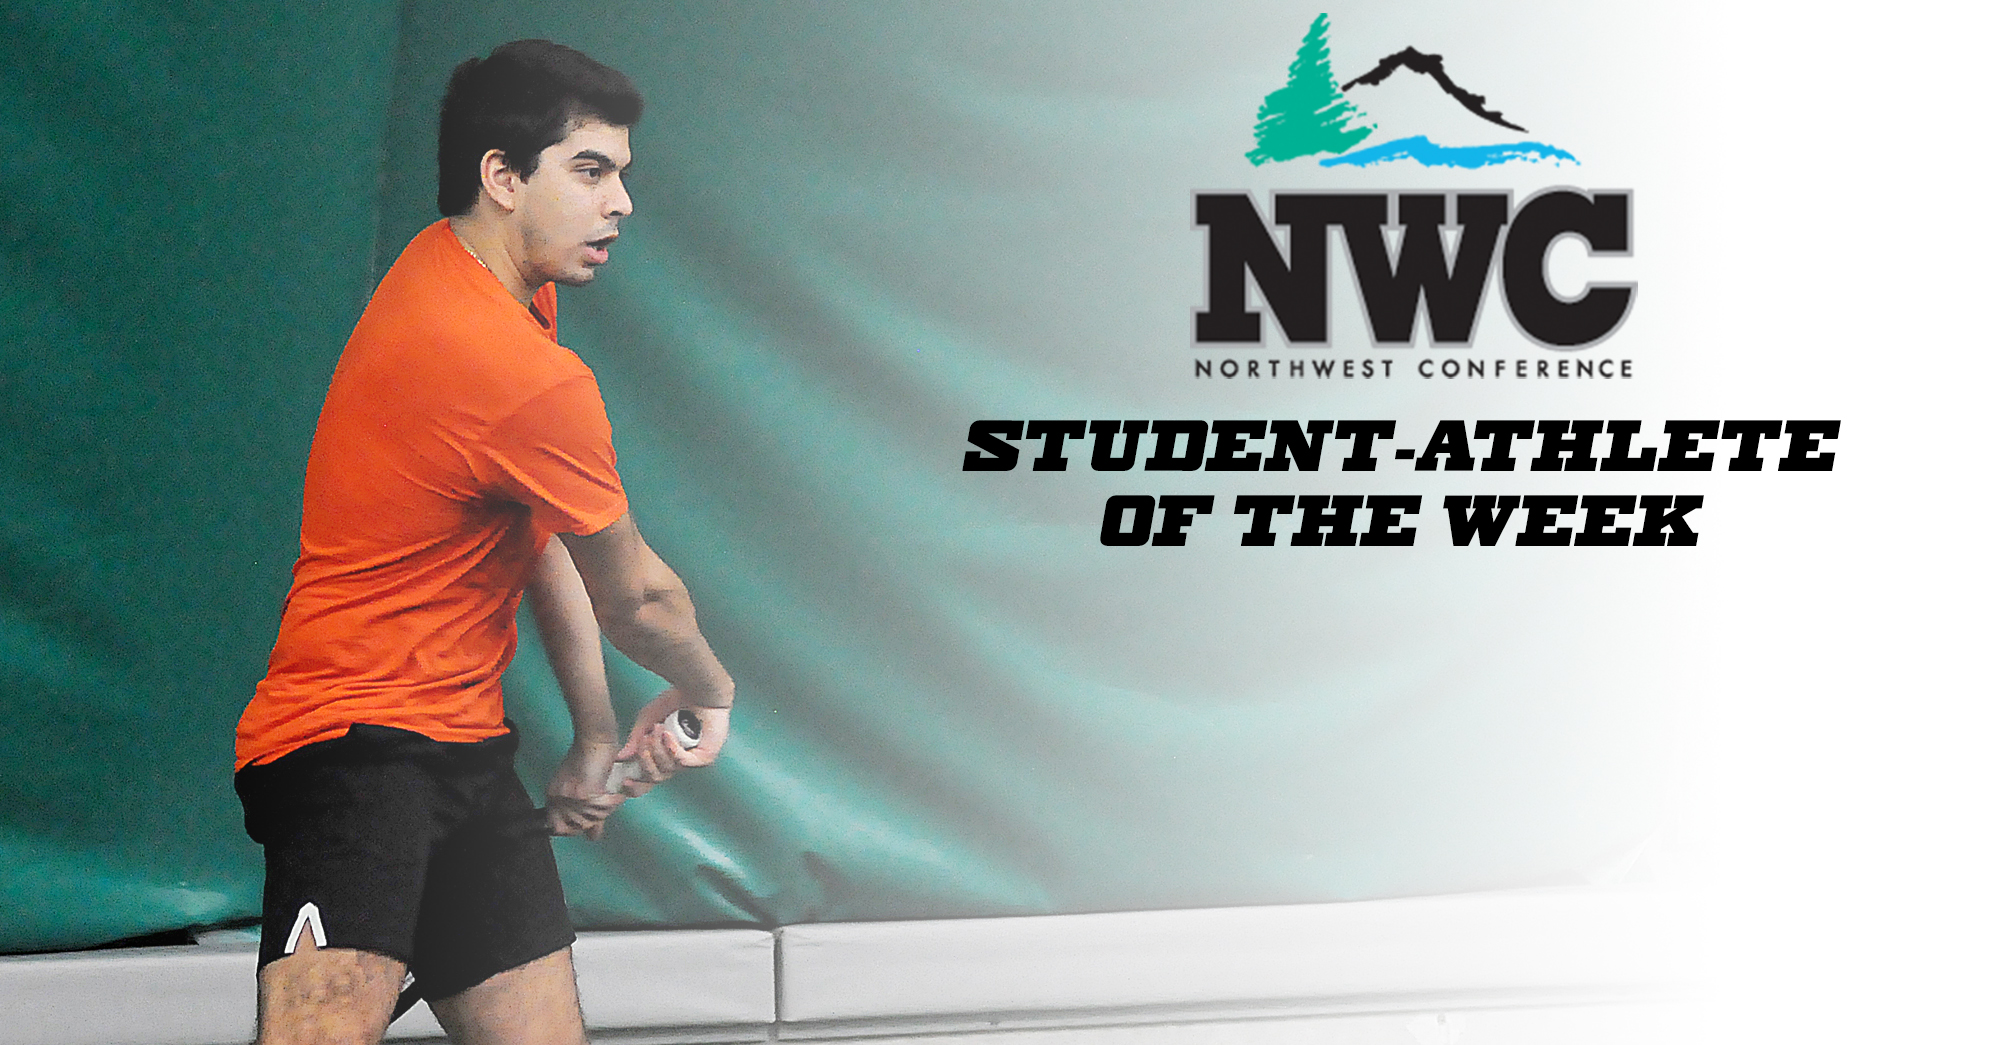 In strong debut, Raed Attia named NWC weekly winner